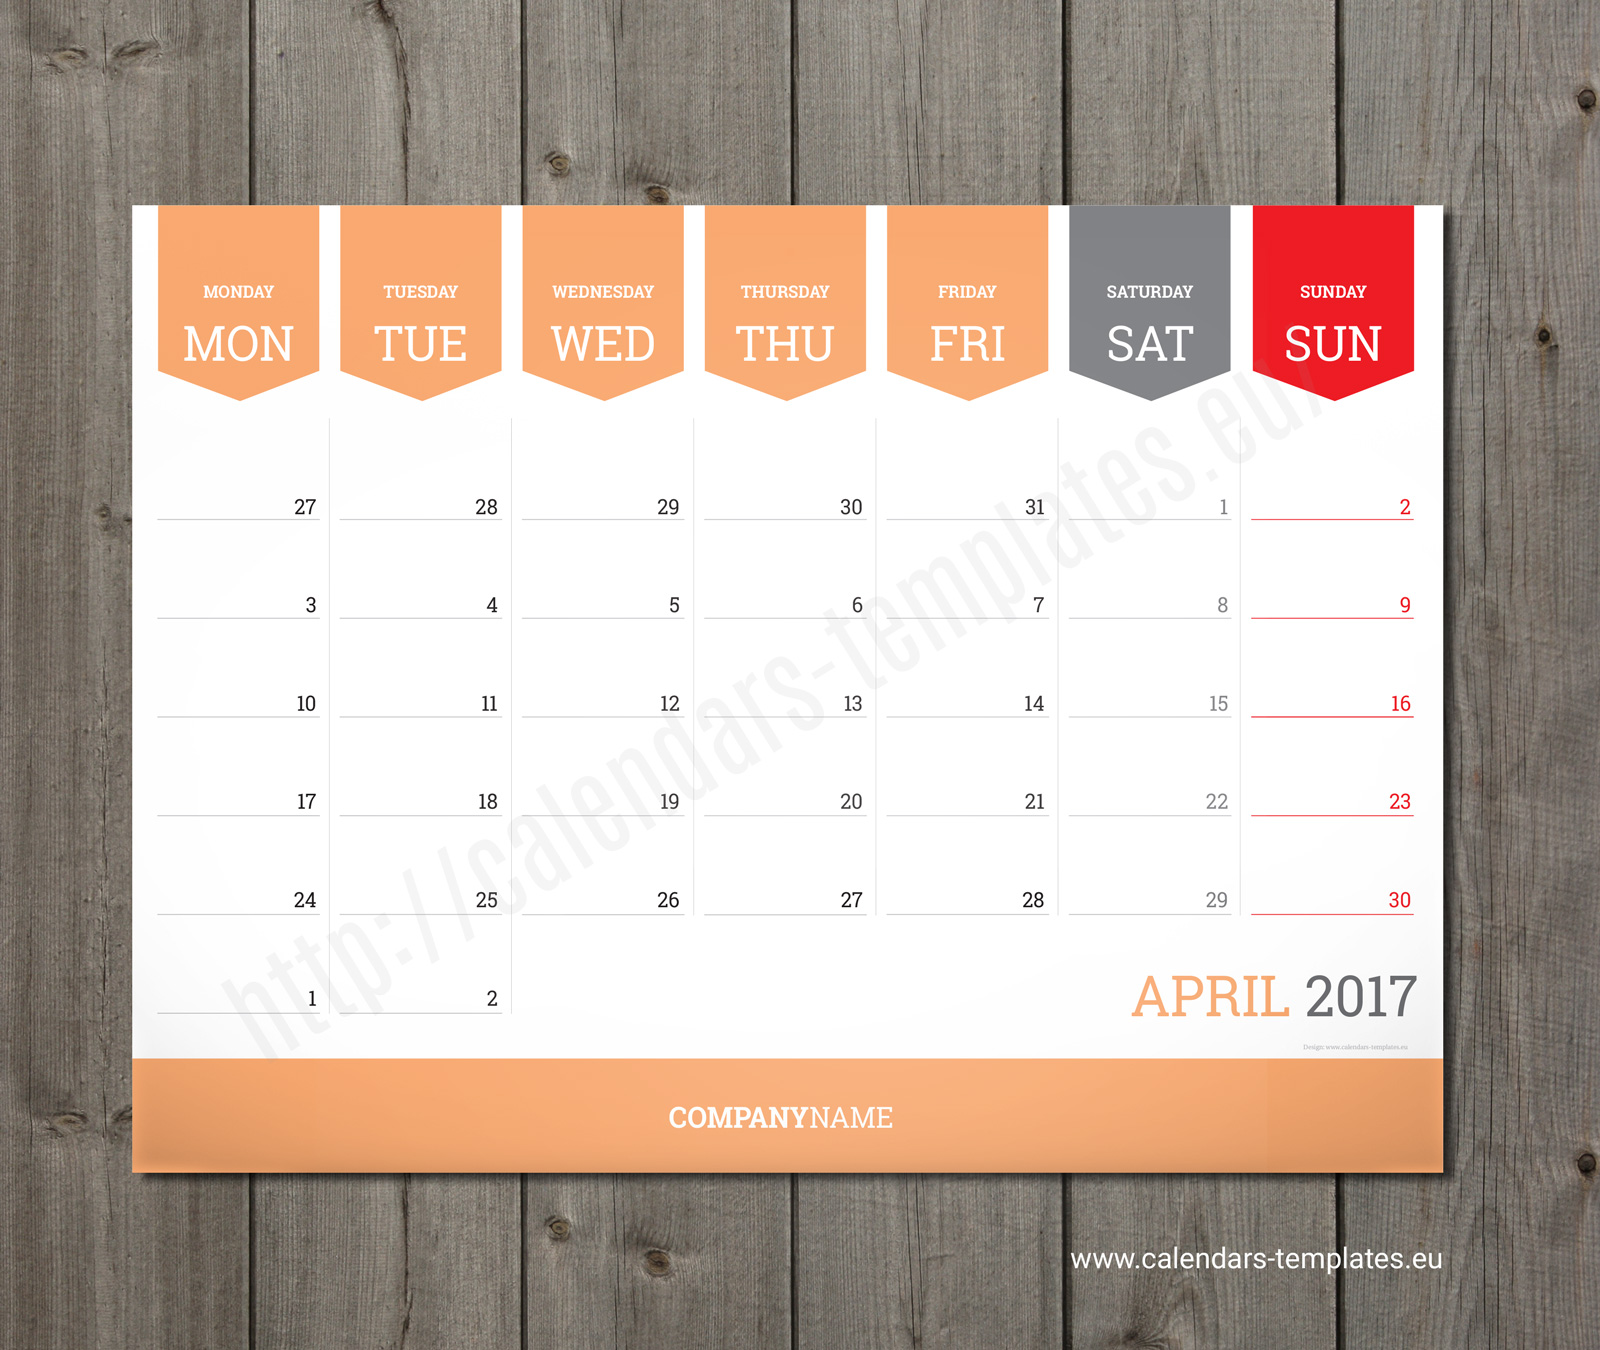 calendar templats - monthly calendar 2018 planner wall or table pad planner